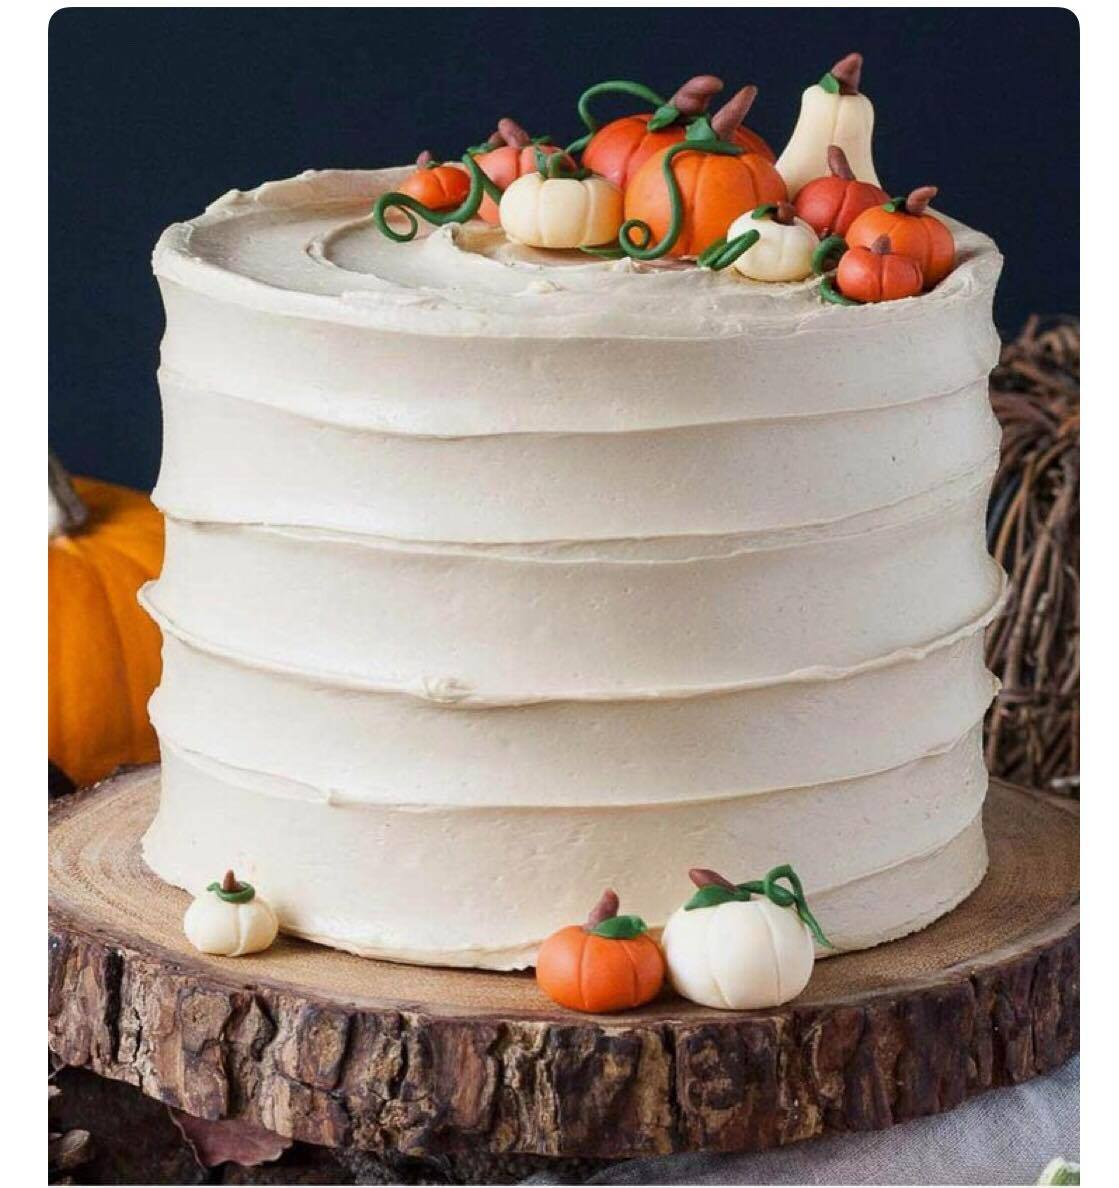 Cake Decorating: Fall Celebration Cake!The Kitchen Studio